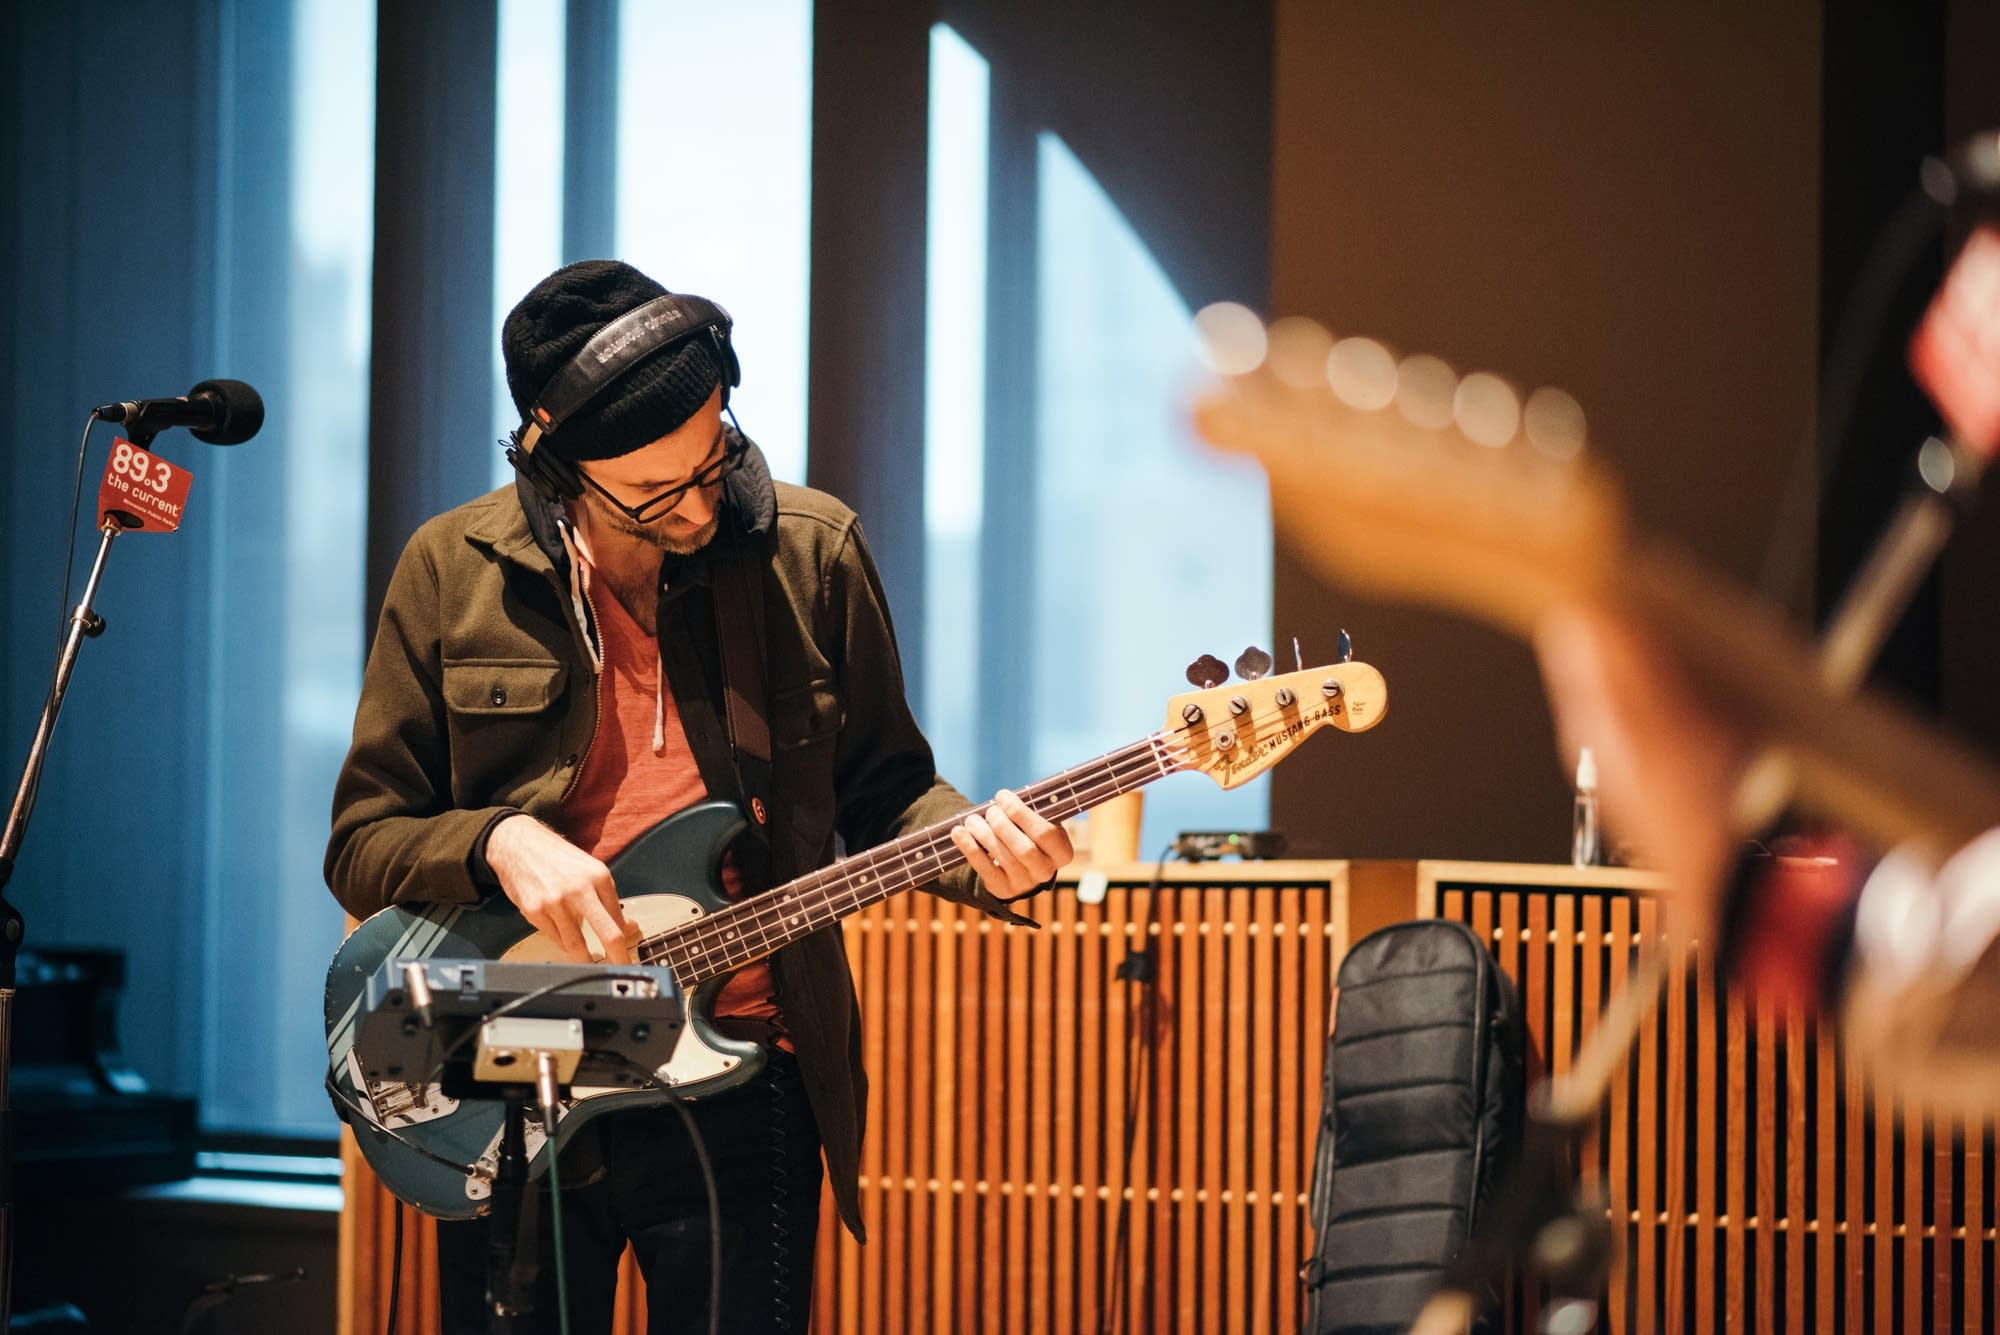 Bassist Chris Morrissey performs in studio